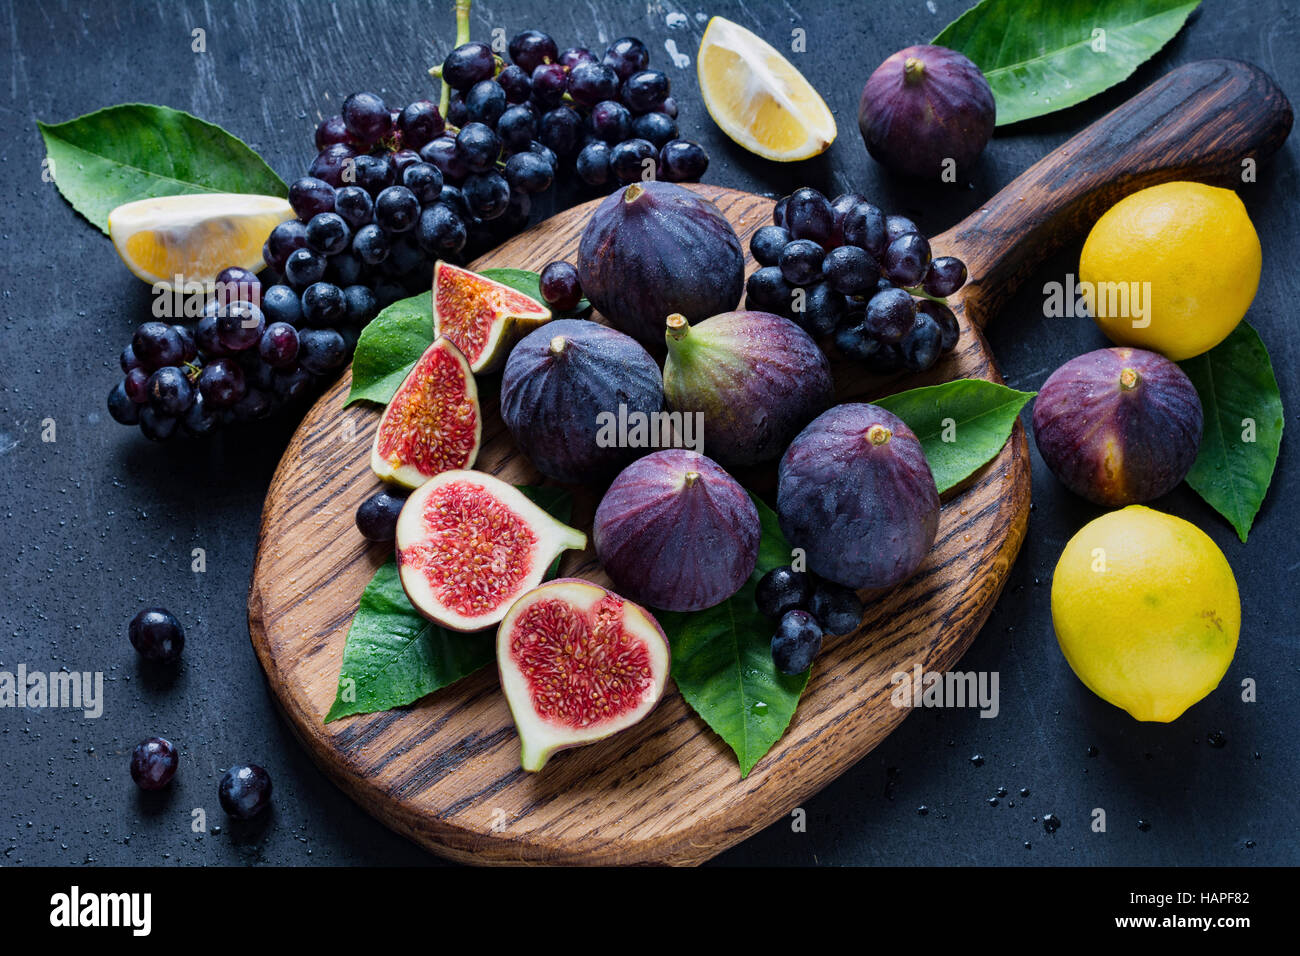 Fresh figs, black grapes and lemons. Fresh fruit variety on wooden cutting board - Stock Image